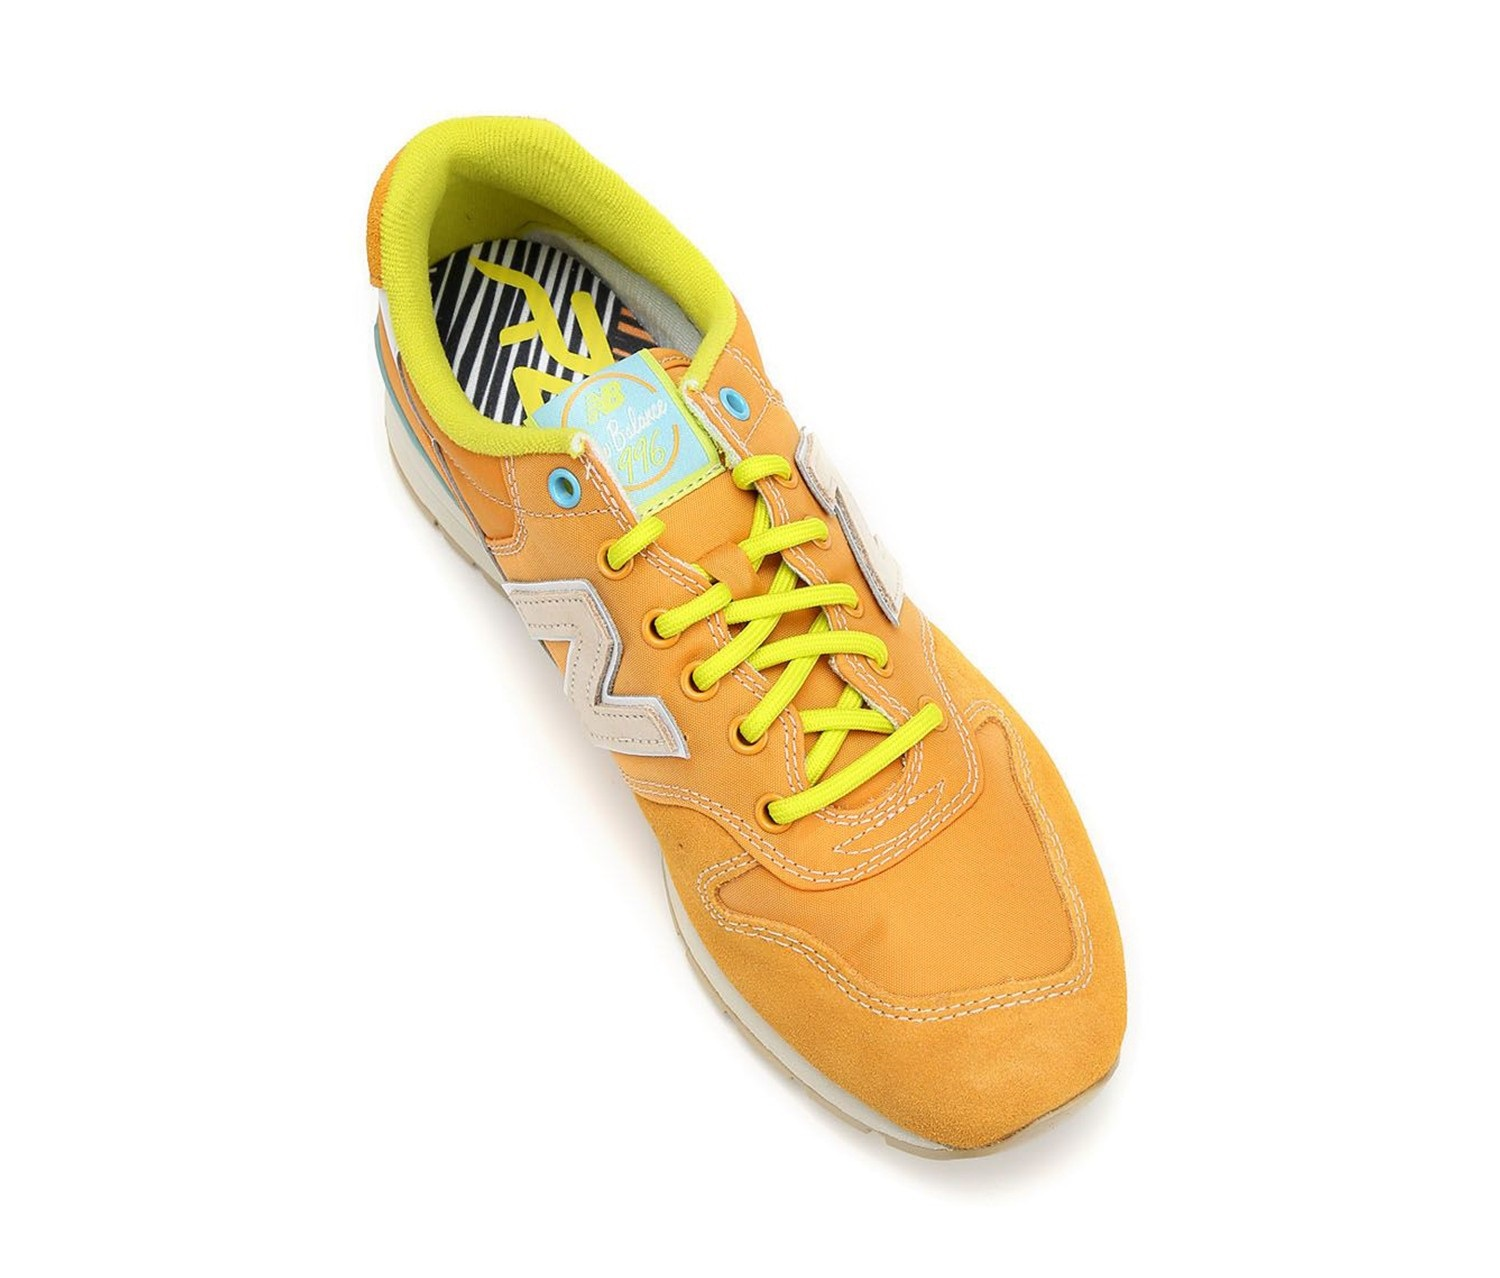 new arrival 2d11f 52f38 Shop New Balance New Balance Men's MRL996GD Shoes, Gold for ...